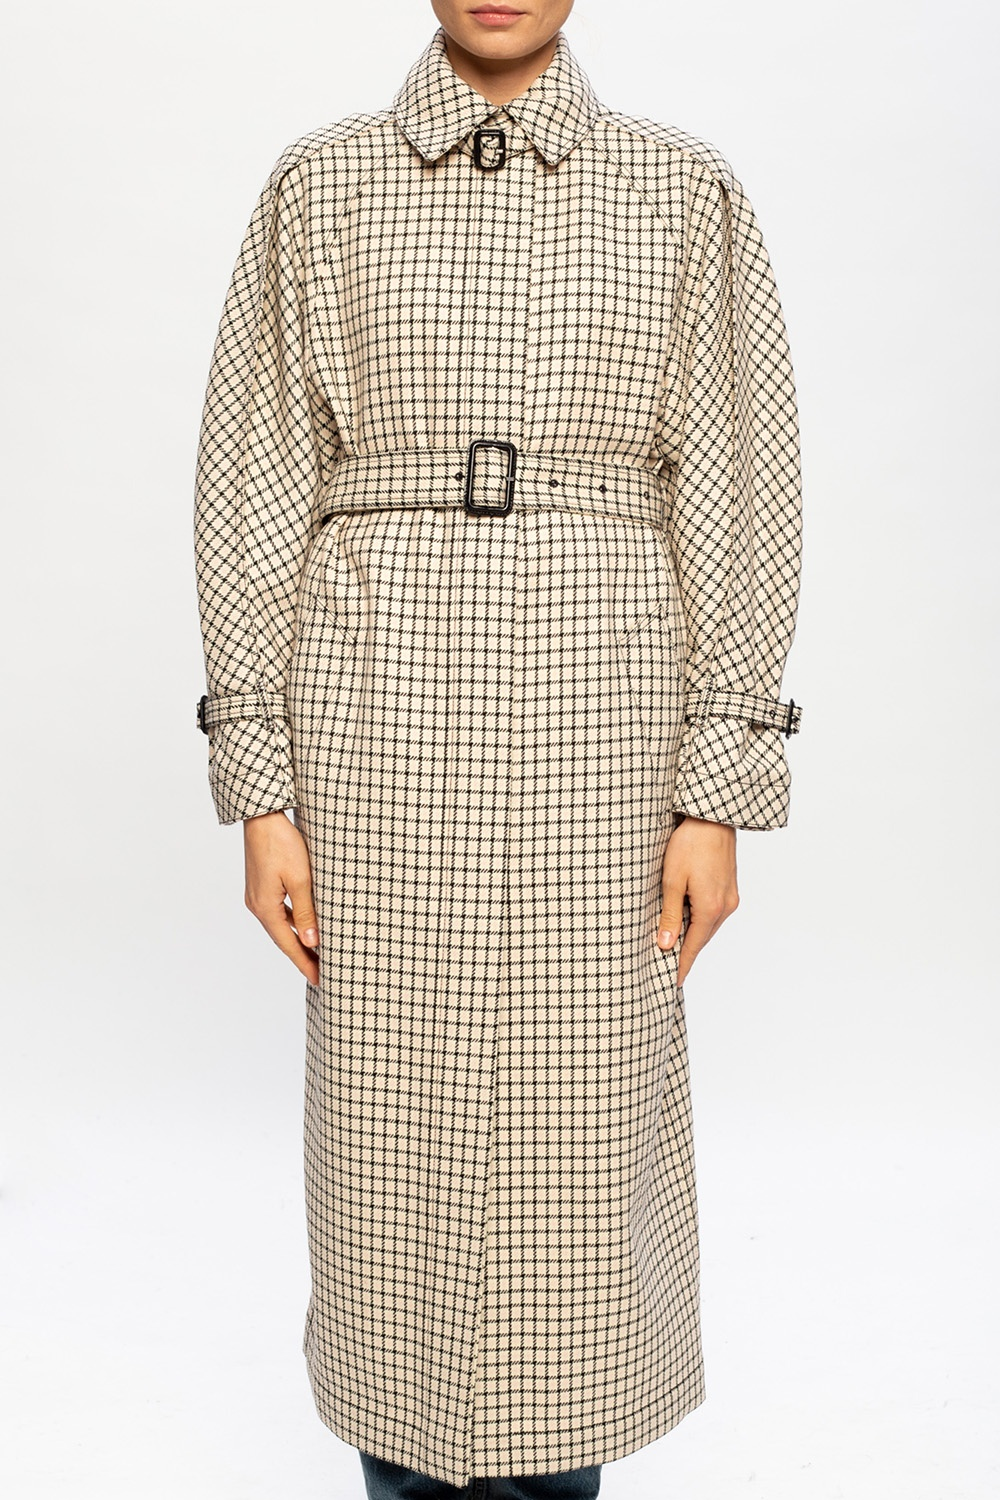 Givenchy Checked wool coat